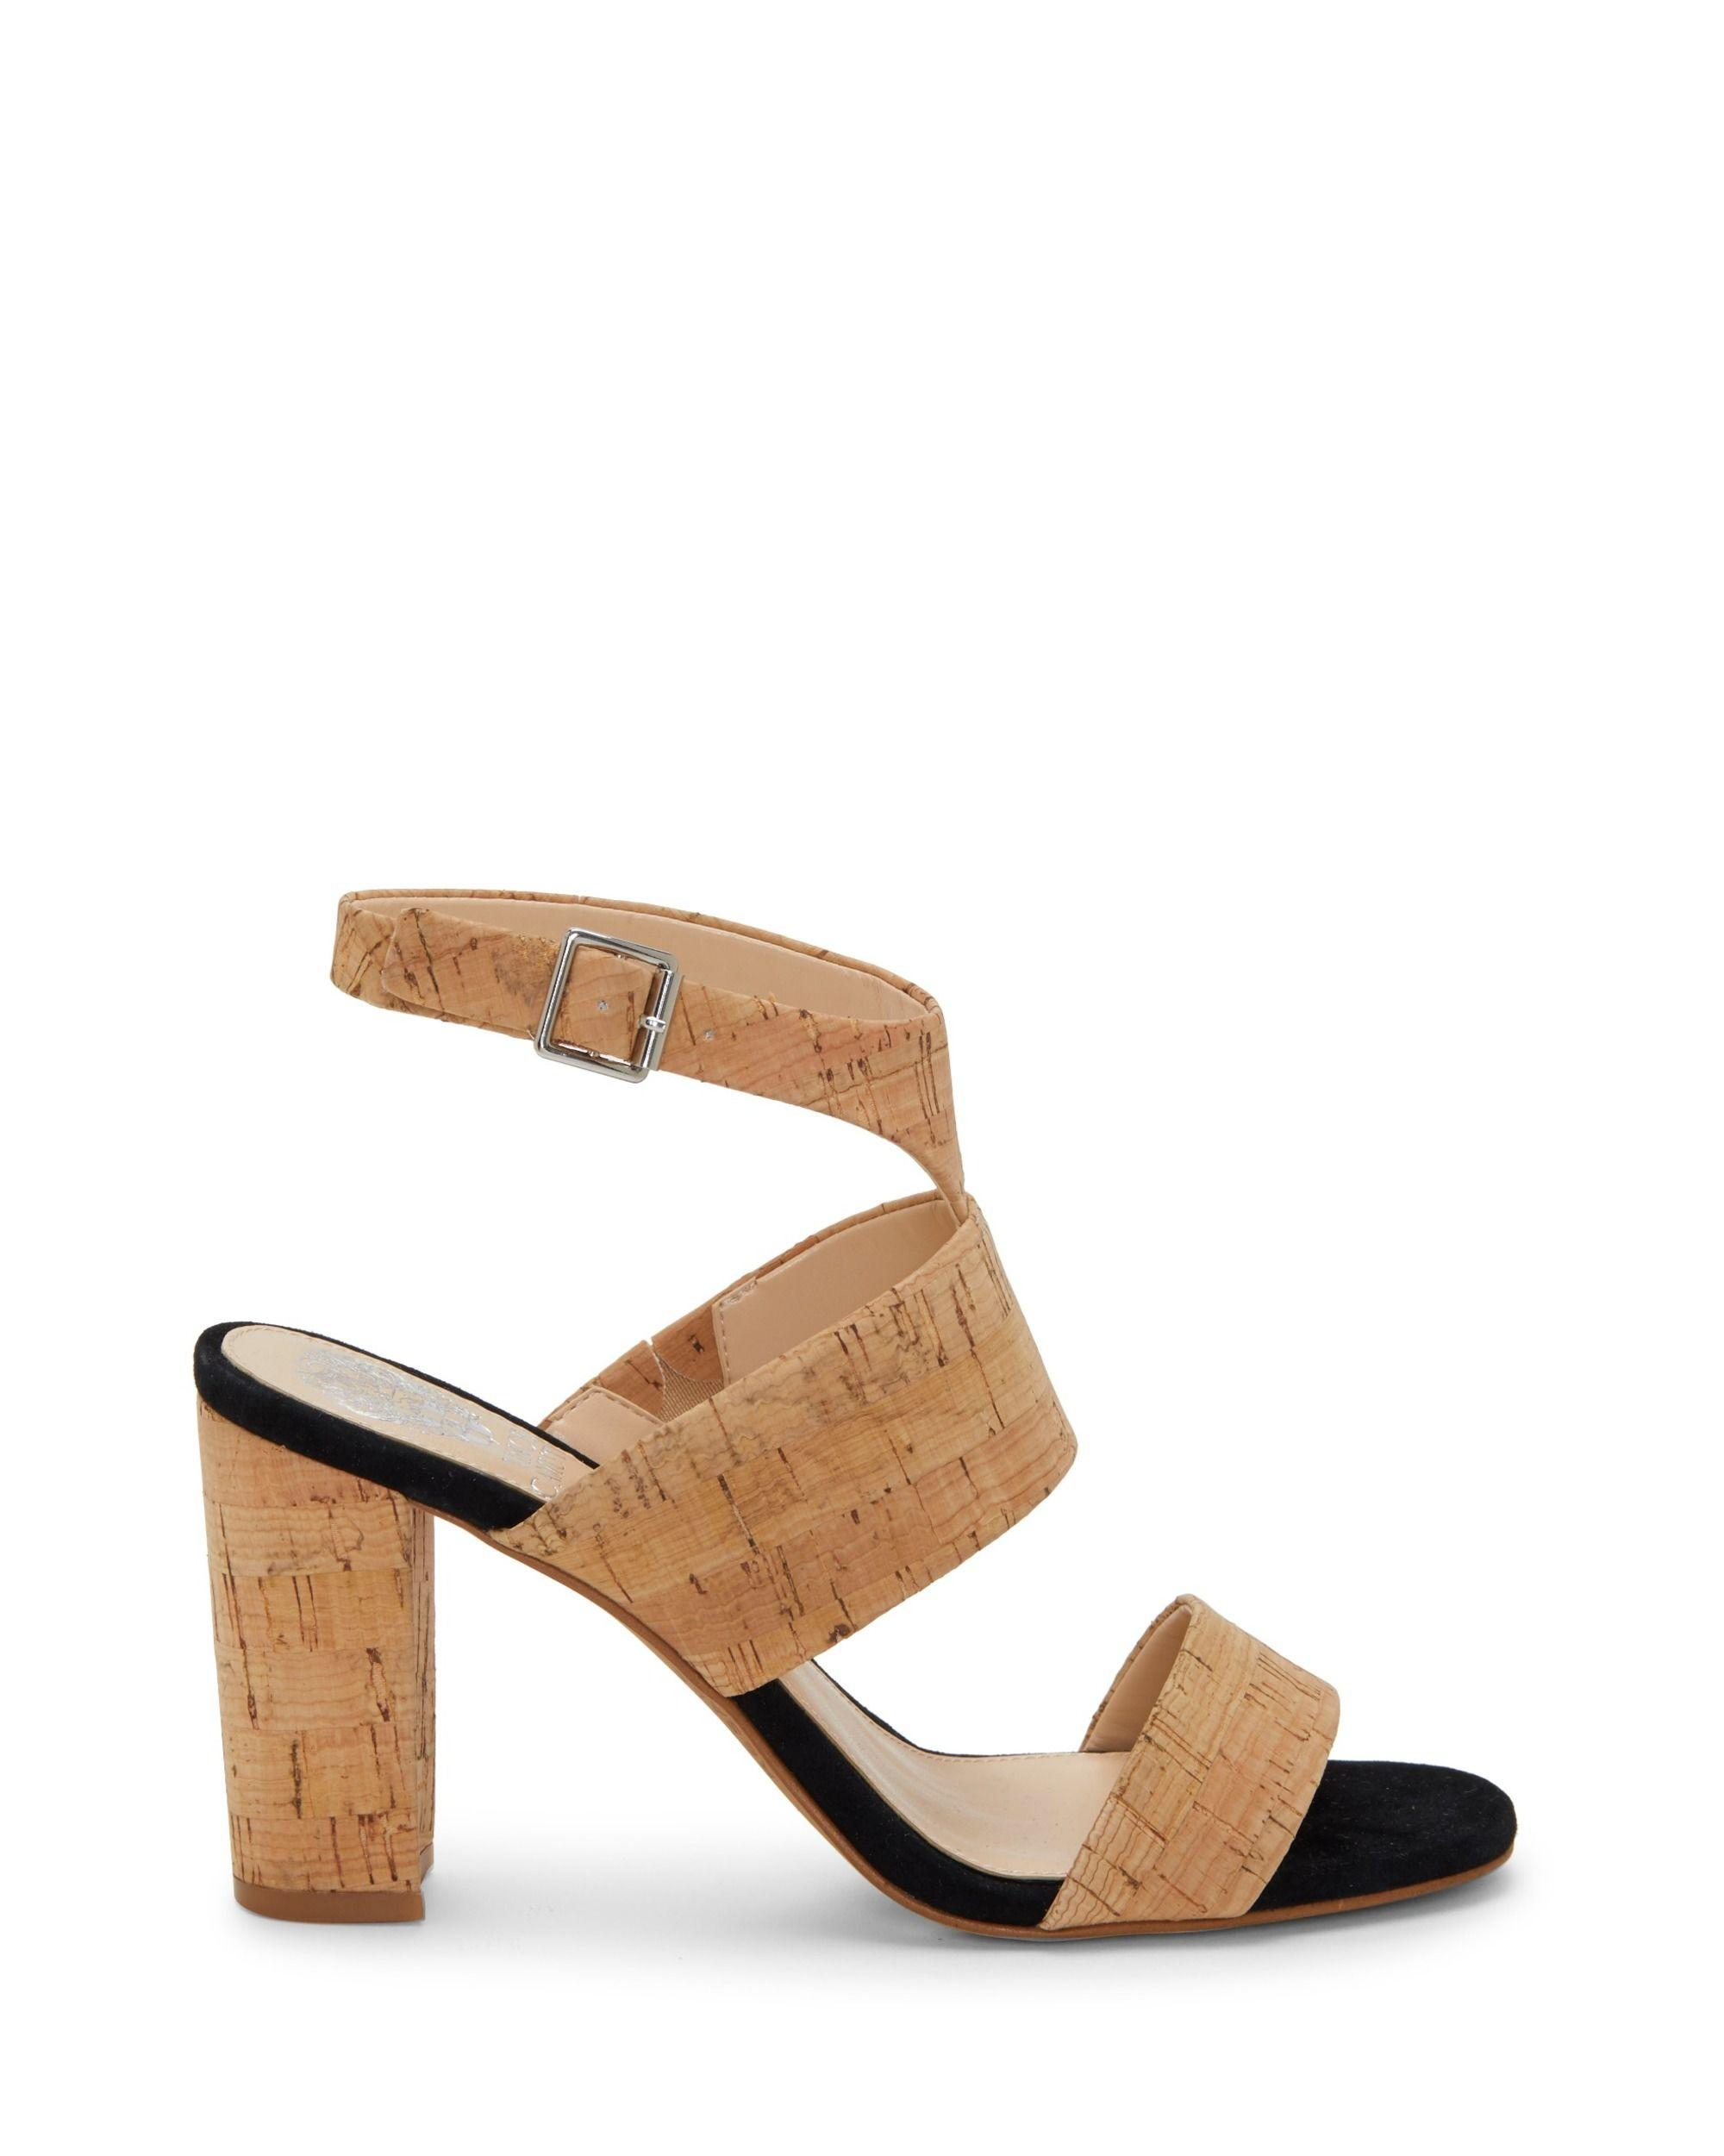 524eafeed41 Lyst - Vince Camuto Warma Ankle Strap Sandal in Natural - Save 1%